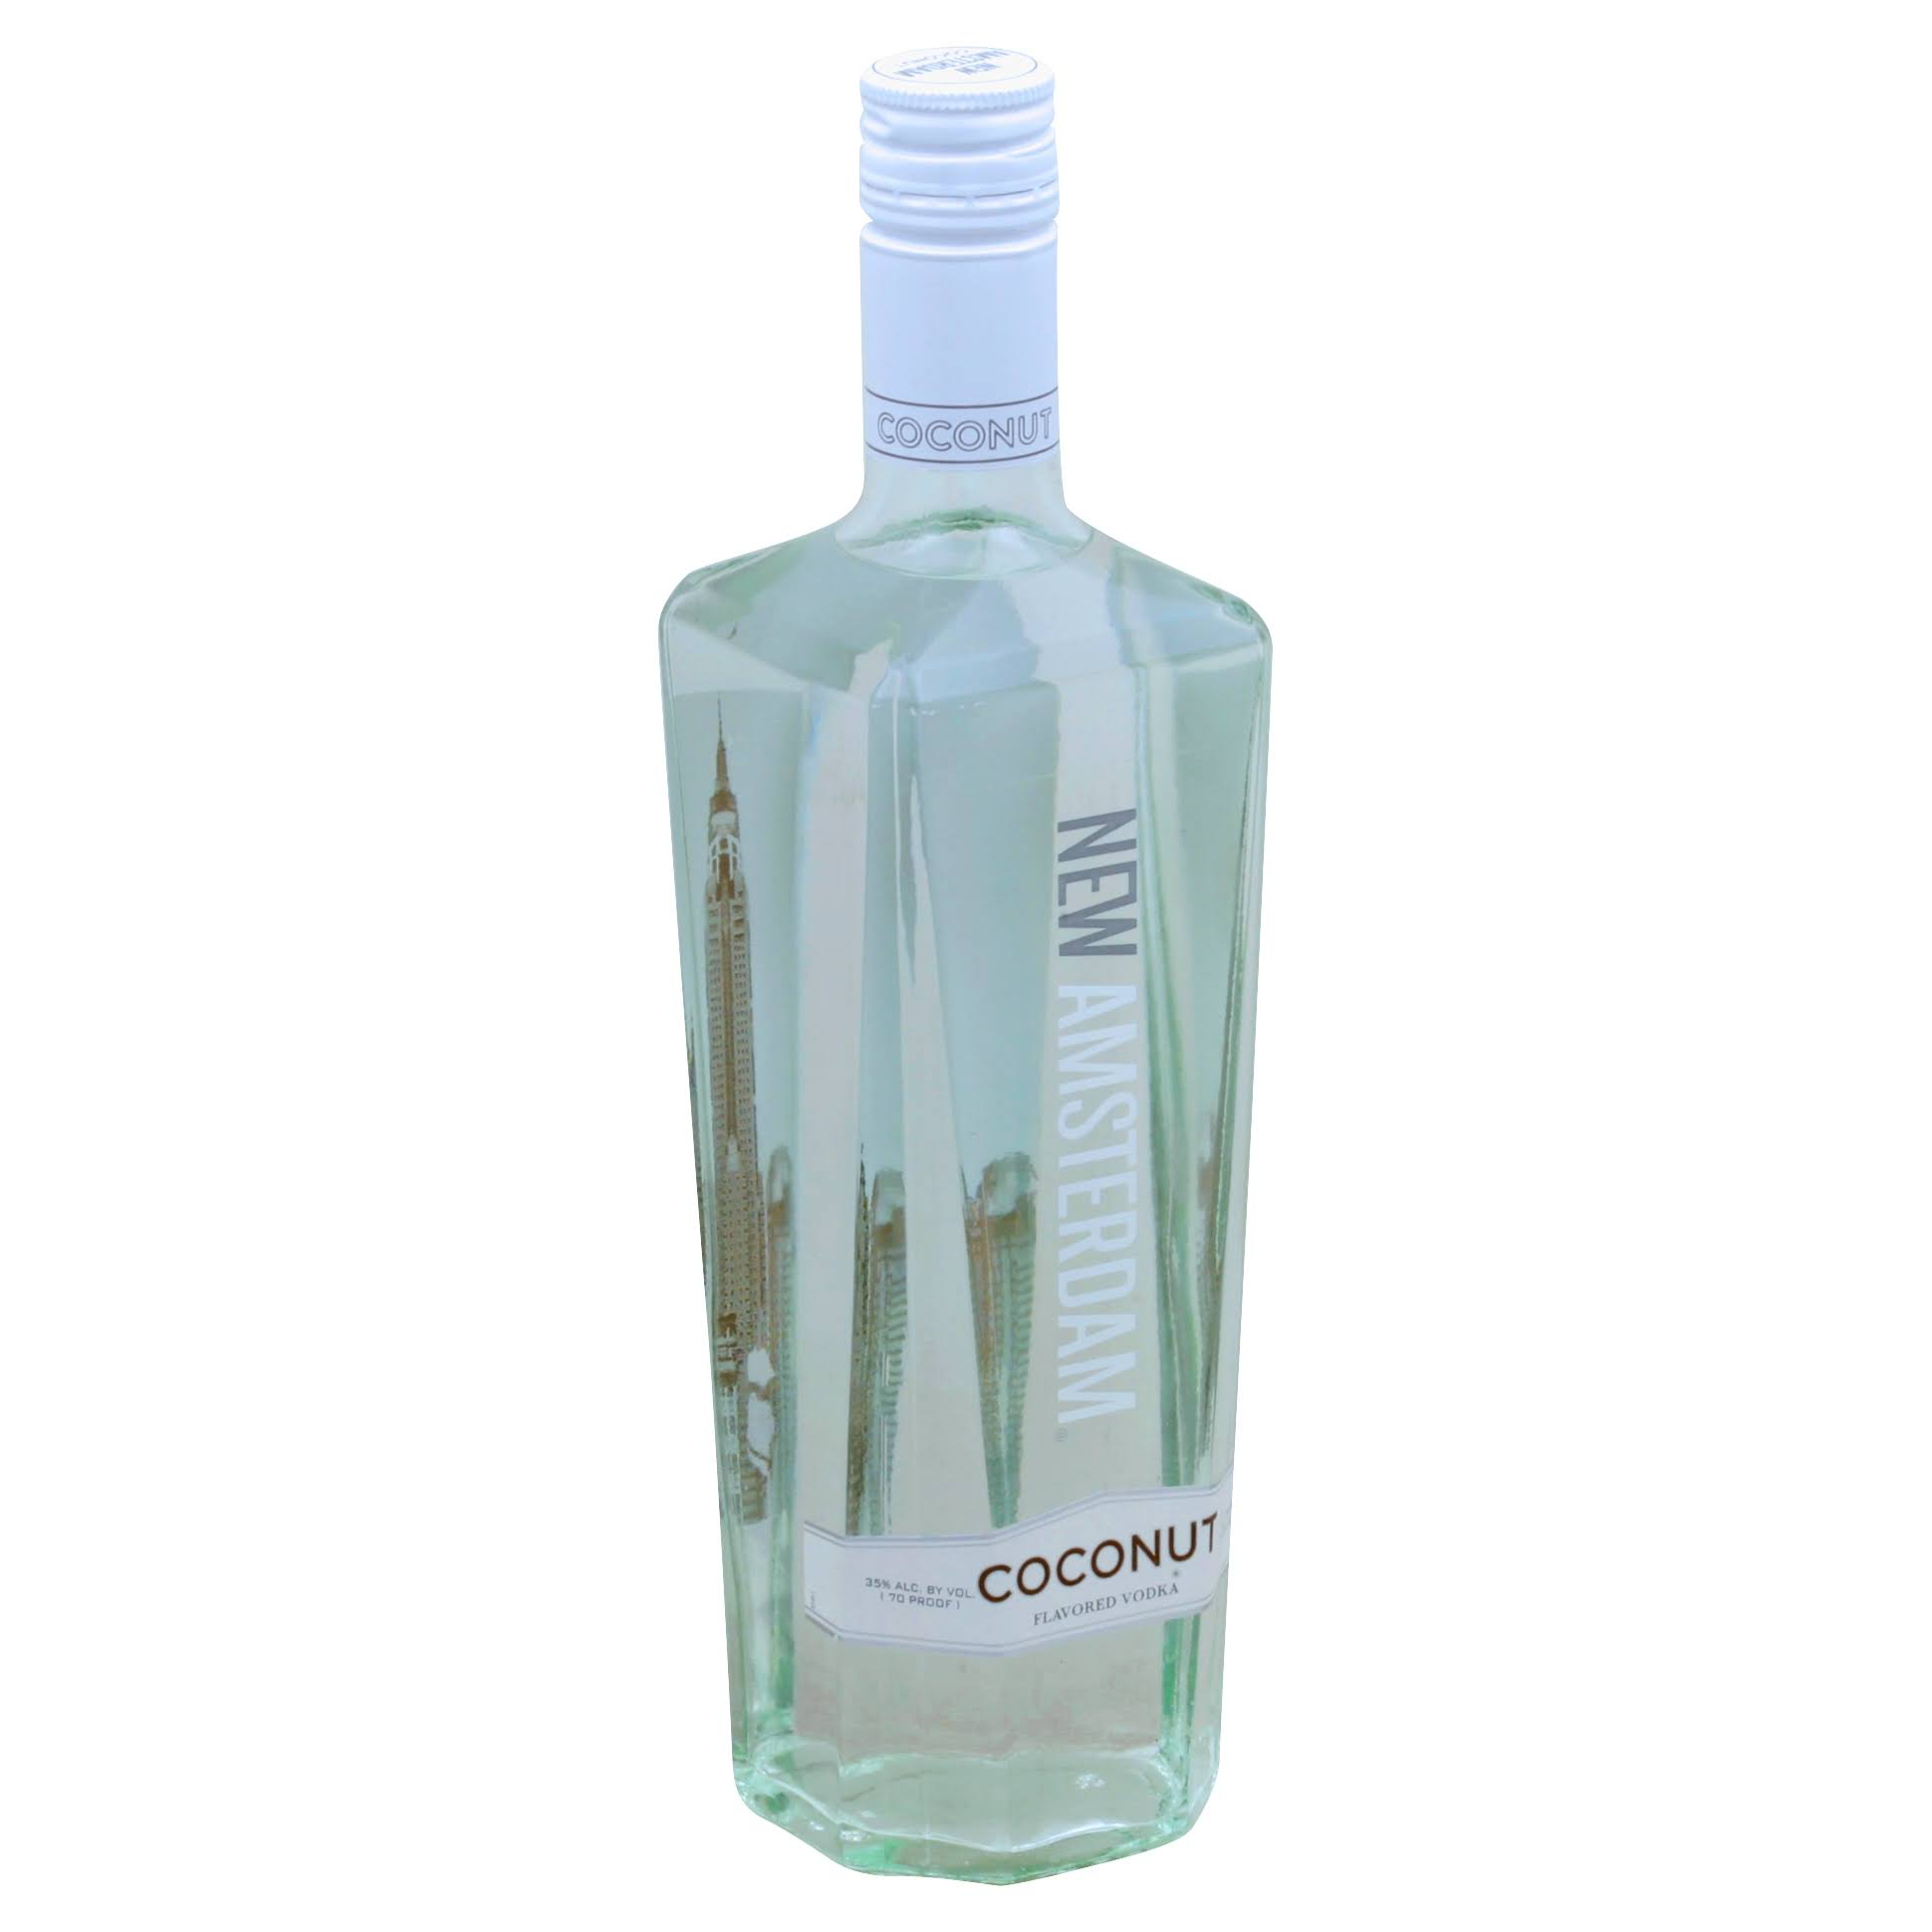 New Amsterdam Vodka, Coconut Flavored - 750 ml